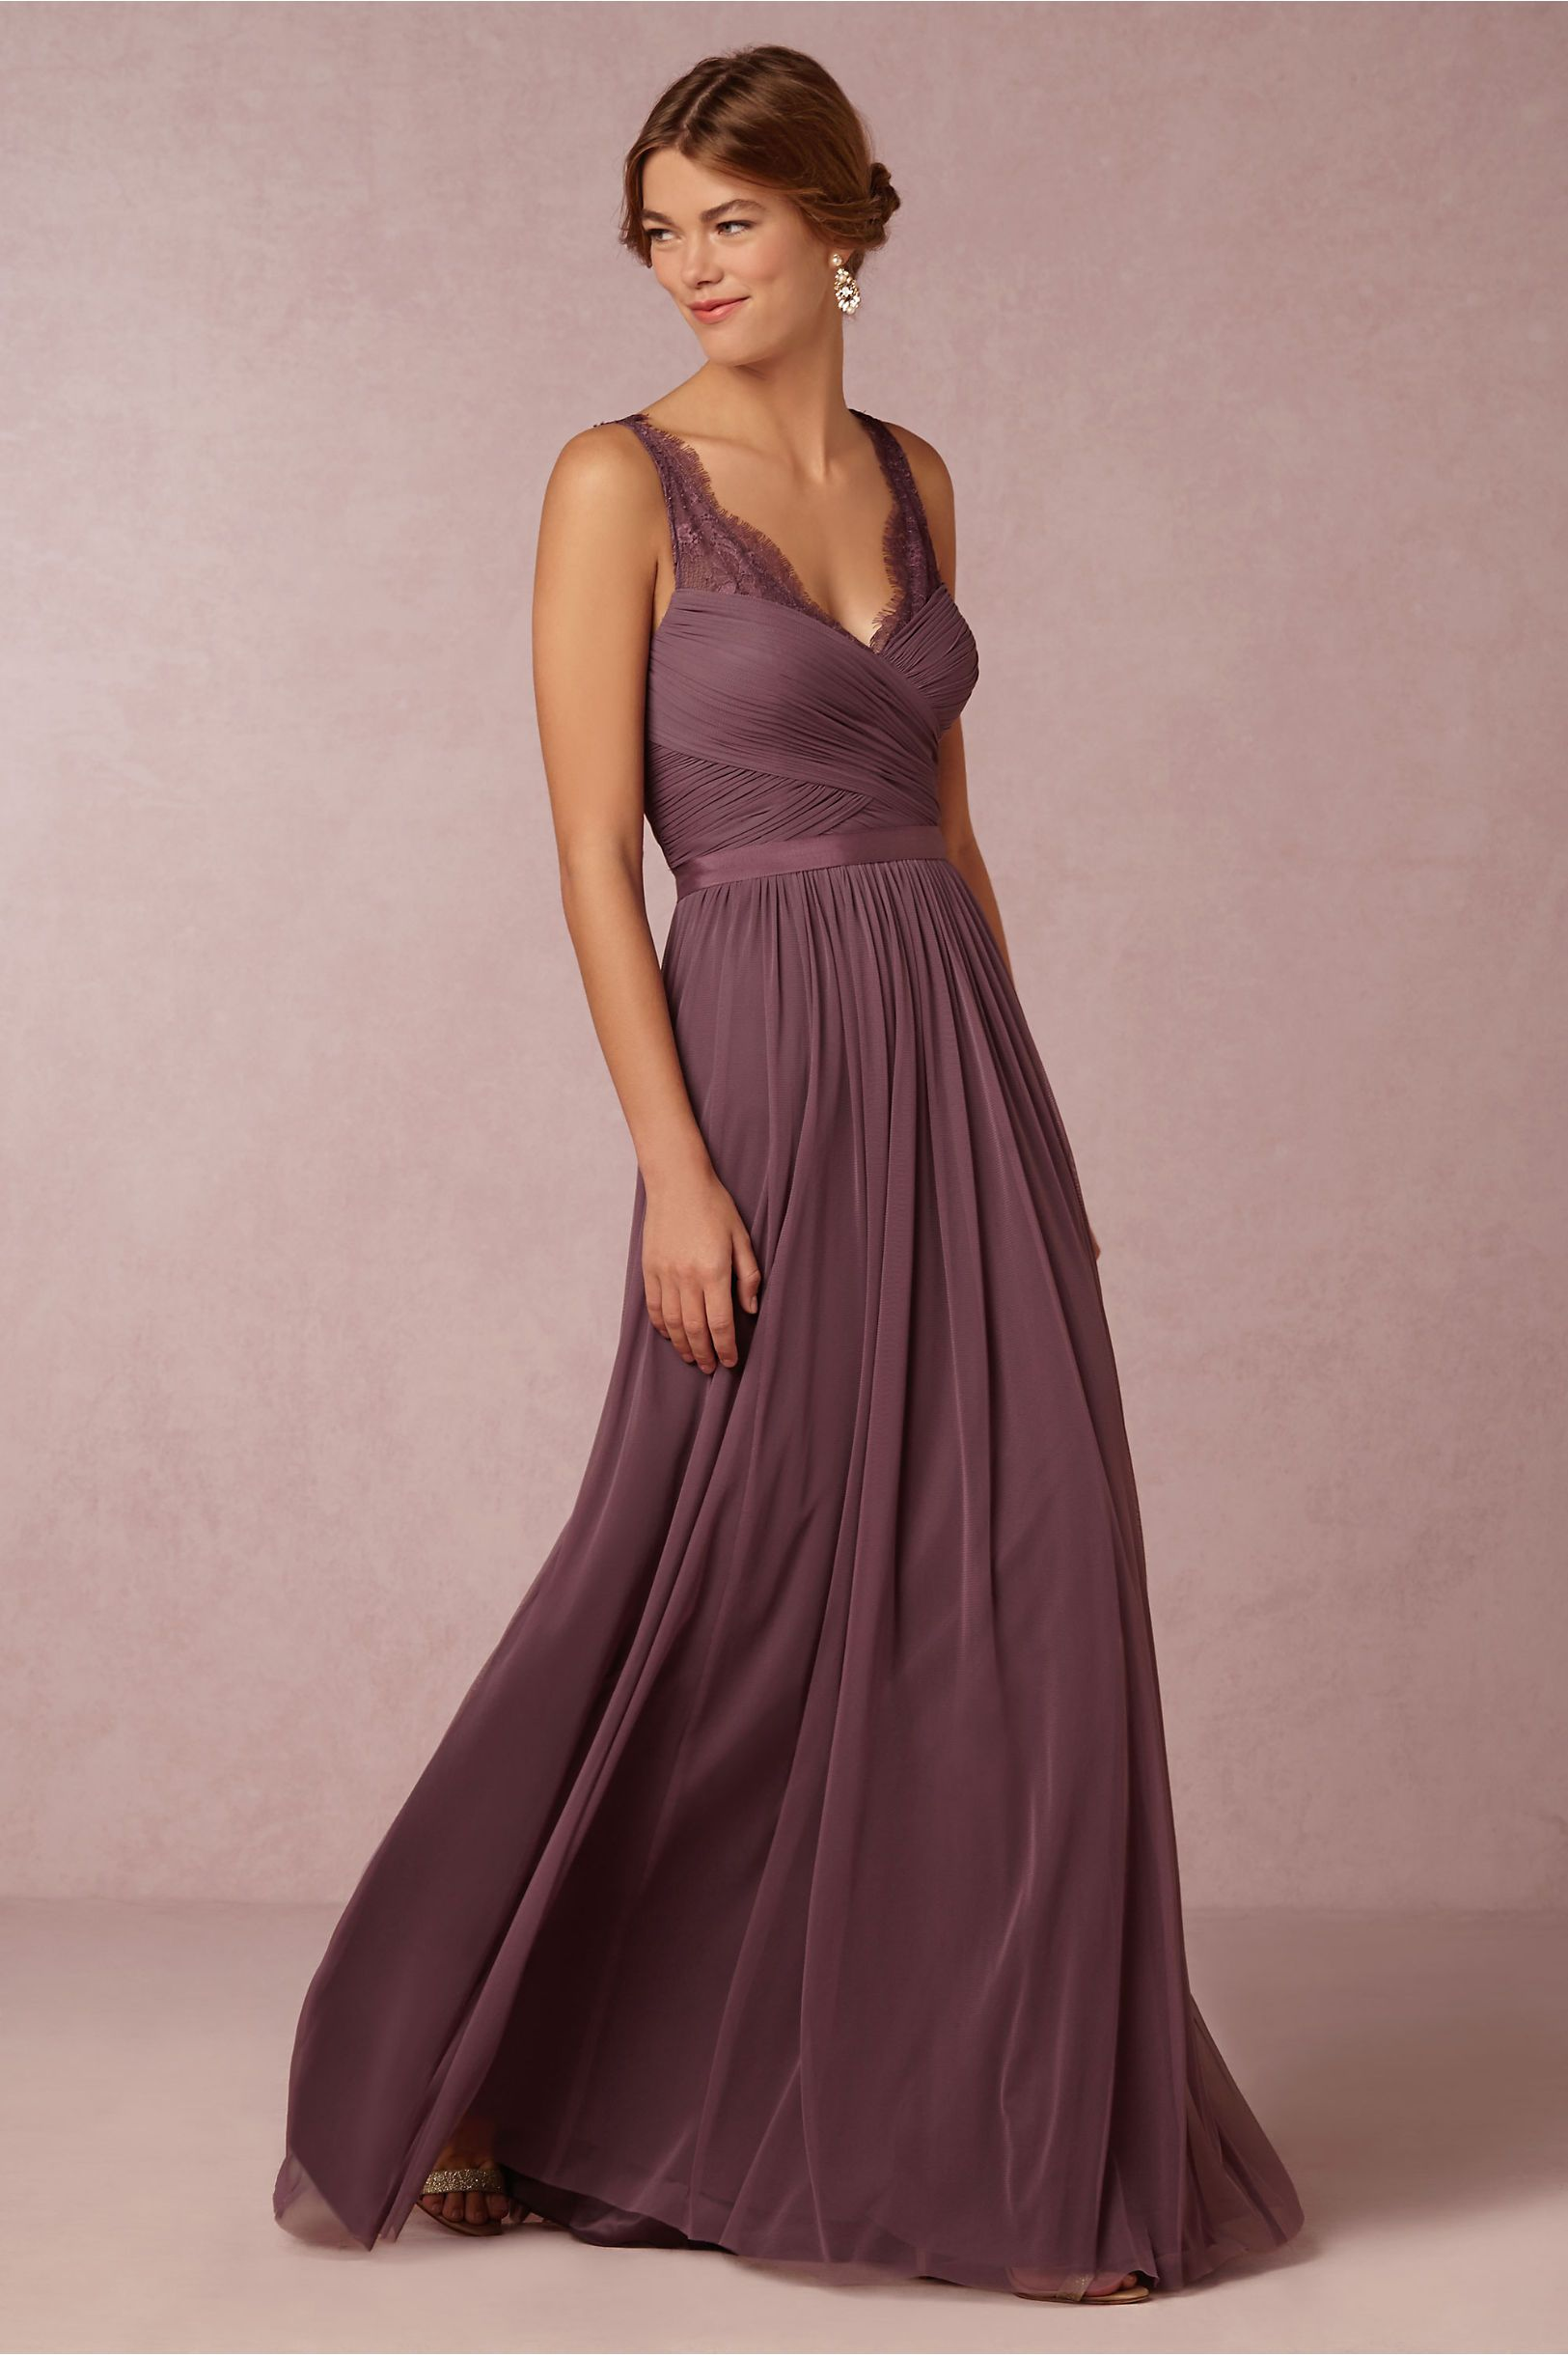 Bhldn fleur dress in bridesmaids bridesmaid dresses at bhldn bhldn fleur dress in bridesmaids bridesmaid dresses at bhldn ombrellifo Gallery